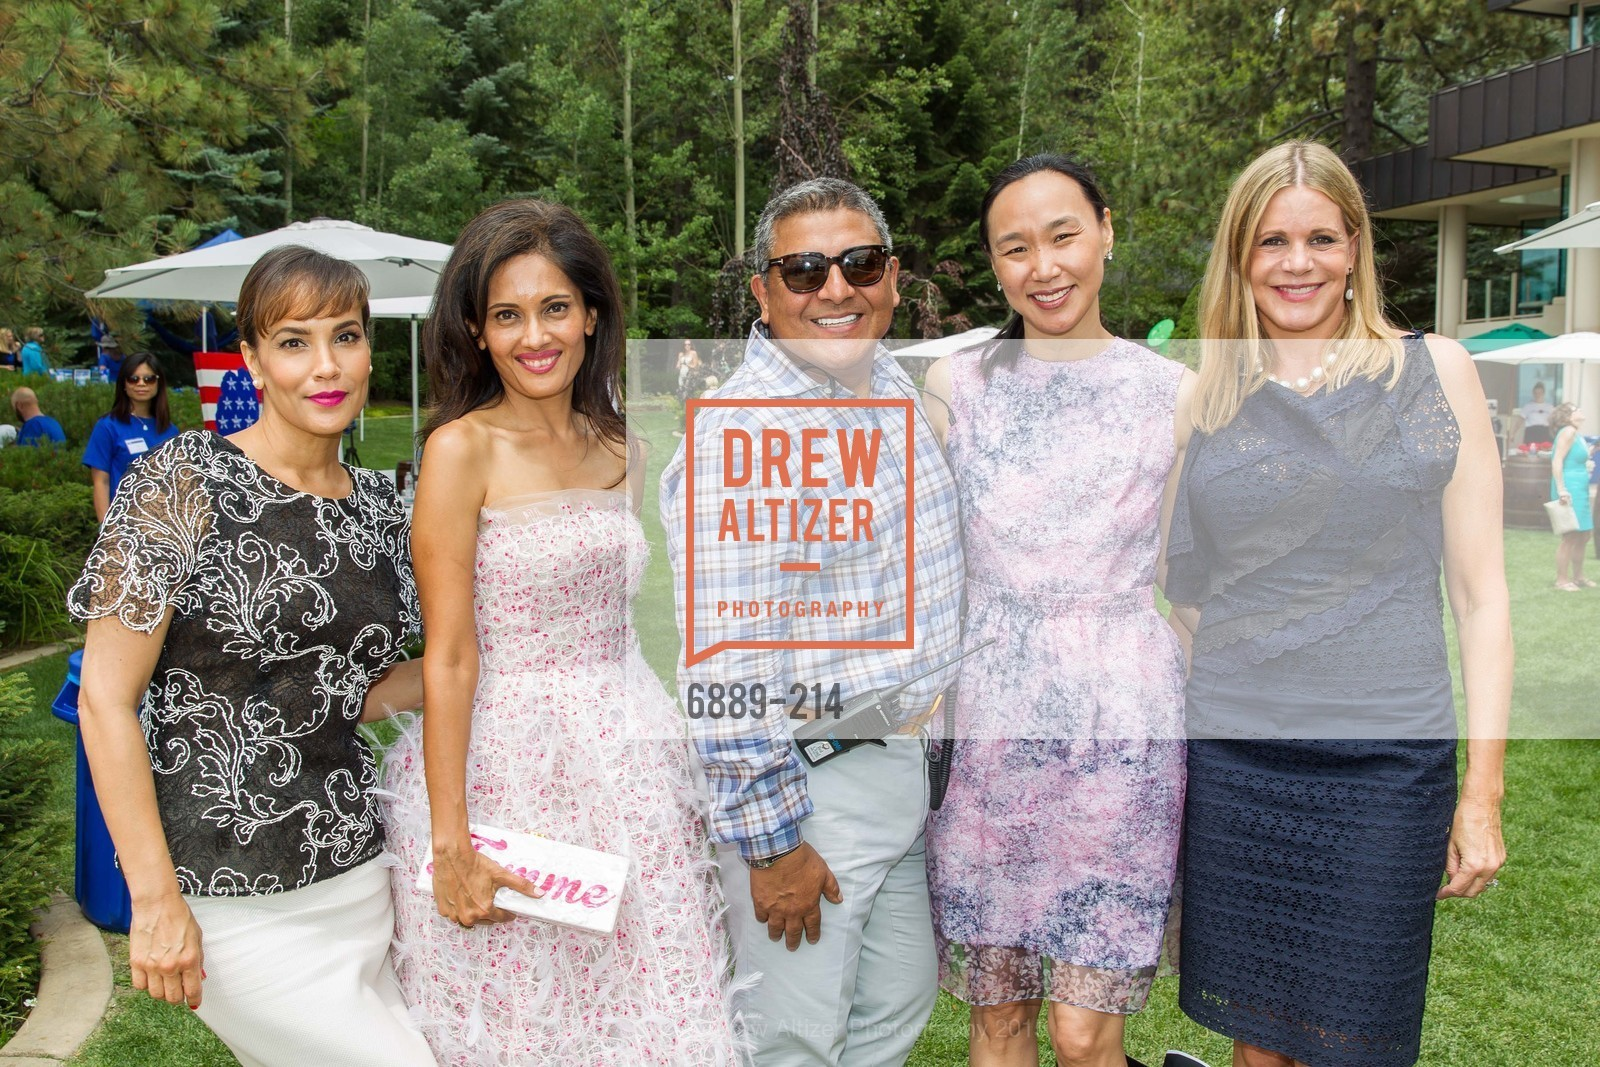 Lora DuBain, Komal Shah, Riccardo Benavides, Carolyn Chang, Mary Beth Shimmon, Saks Fifth Avenue and The League to Save Lake Tahoe Present Fashion on the Lake, Private Residence, August 1st, 2015,Drew Altizer, Drew Altizer Photography, full-service agency, private events, San Francisco photographer, photographer california